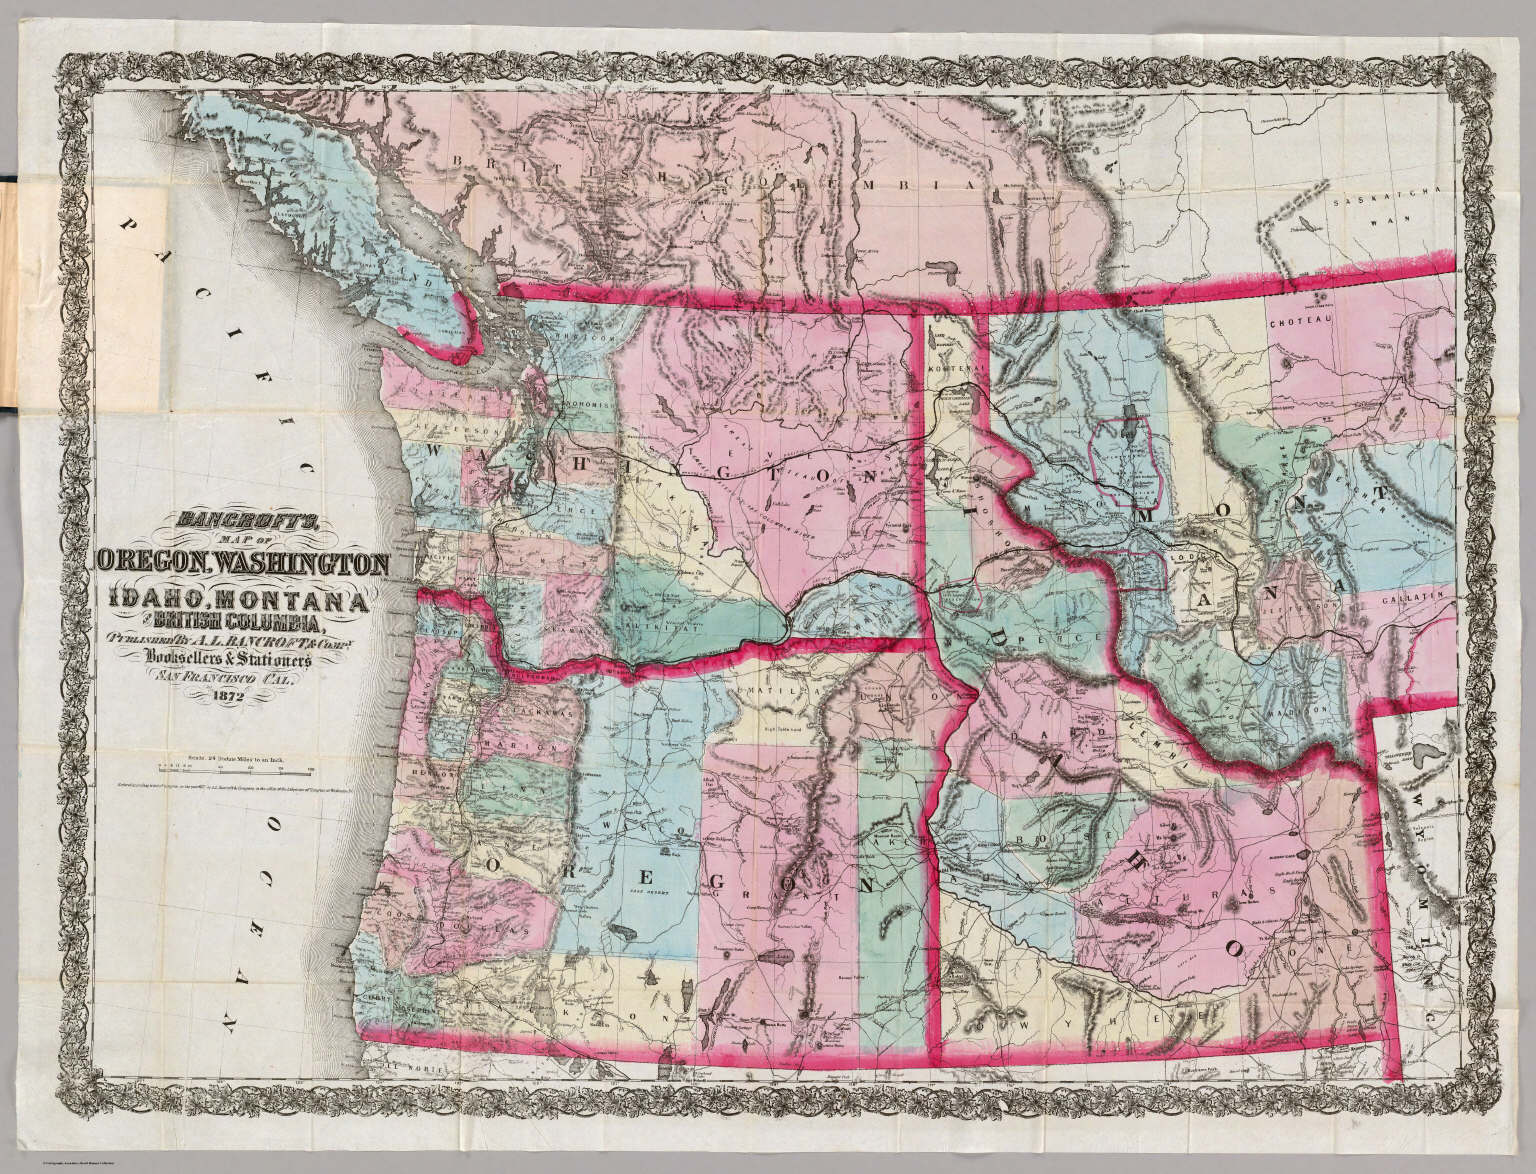 Bancrofts Map Of Oregon Washington Idaho Montana And British - Map of oregon and washington